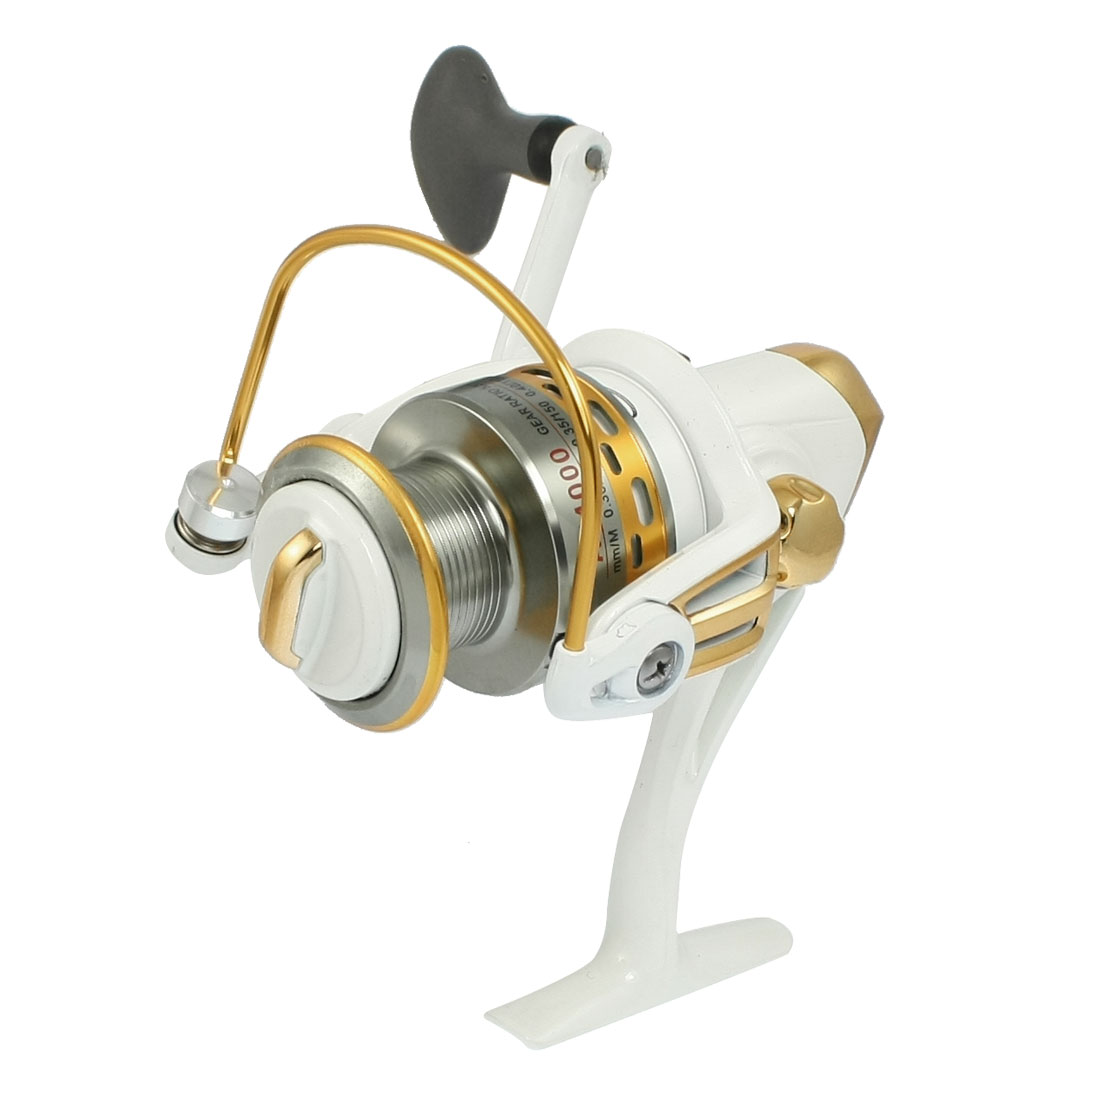 Offwhite Gold Tone Gear Ratio 5.5:1 3-Ball Bearings Fishing Spinning Reel AF4000